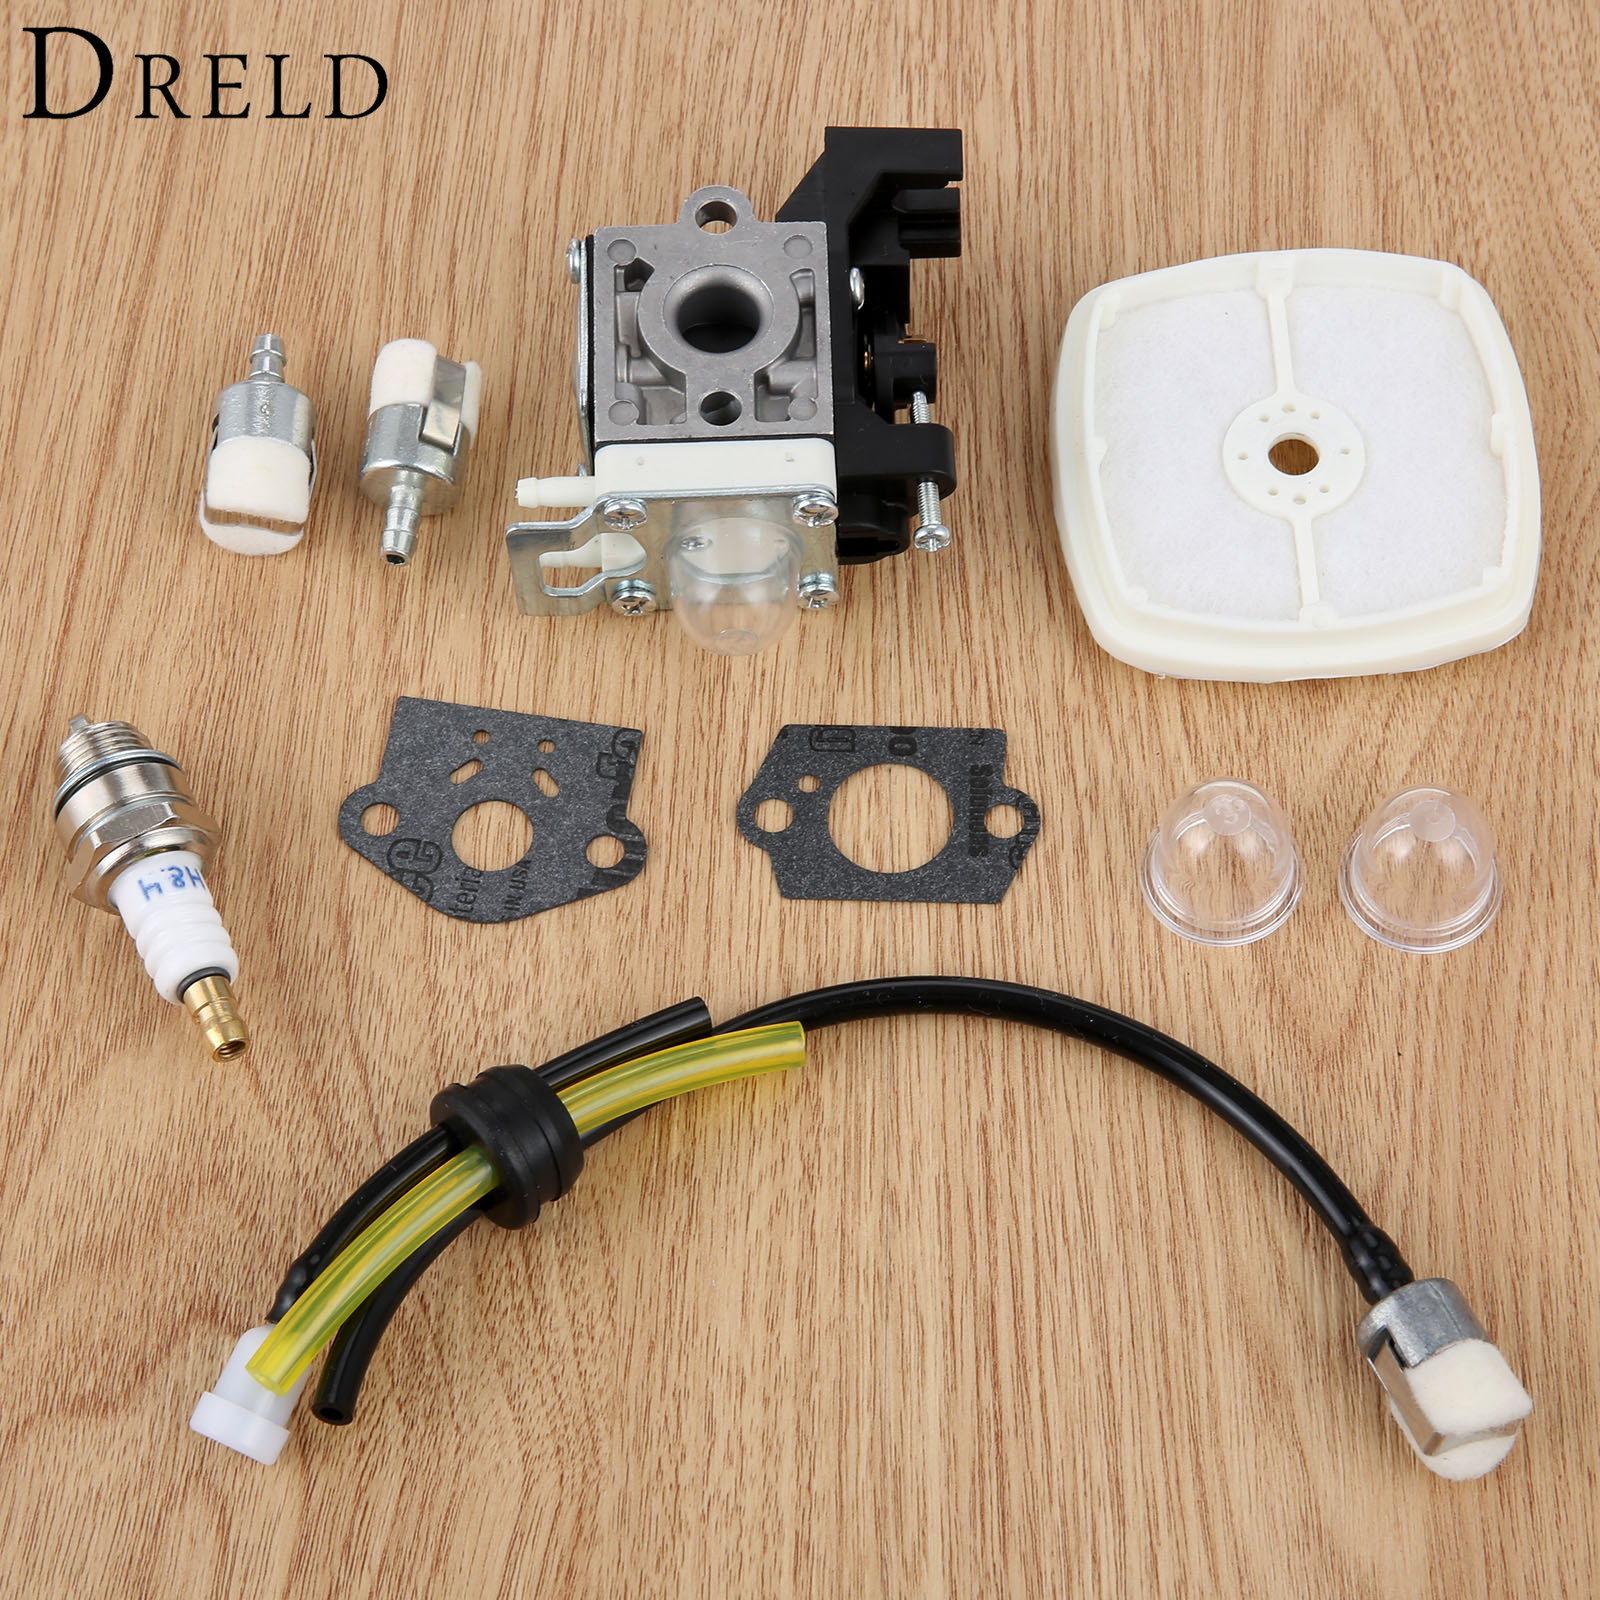 DRELD Carburetor Air Filter Fuel Line Kit for Zama RB-K93 Echo SRM-225 GT-225 PAS-225 Trimmer Brushcutter Chainsaws Tool Parts kelkong 5 carburetor primer bulbs fuel pump oem for chainsaws blowers trimmer homelite echo ryobi poulan parts